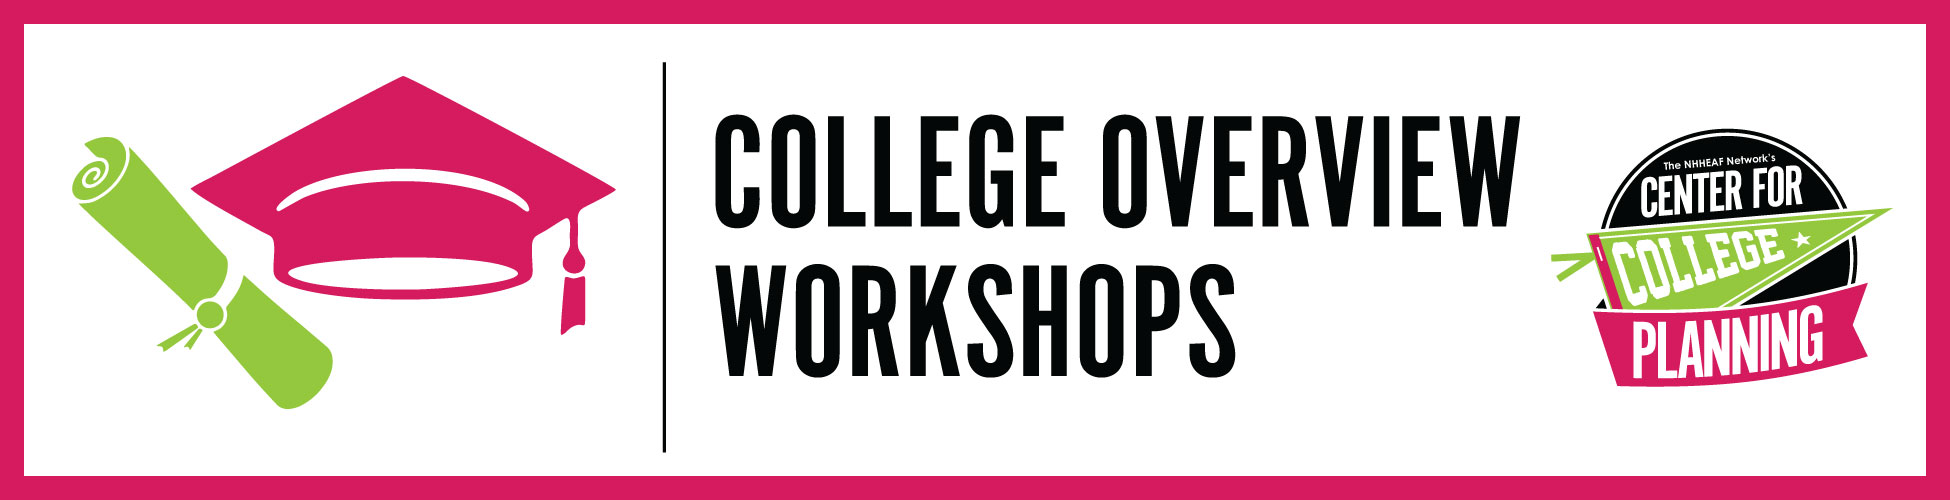 College Overview Workshops